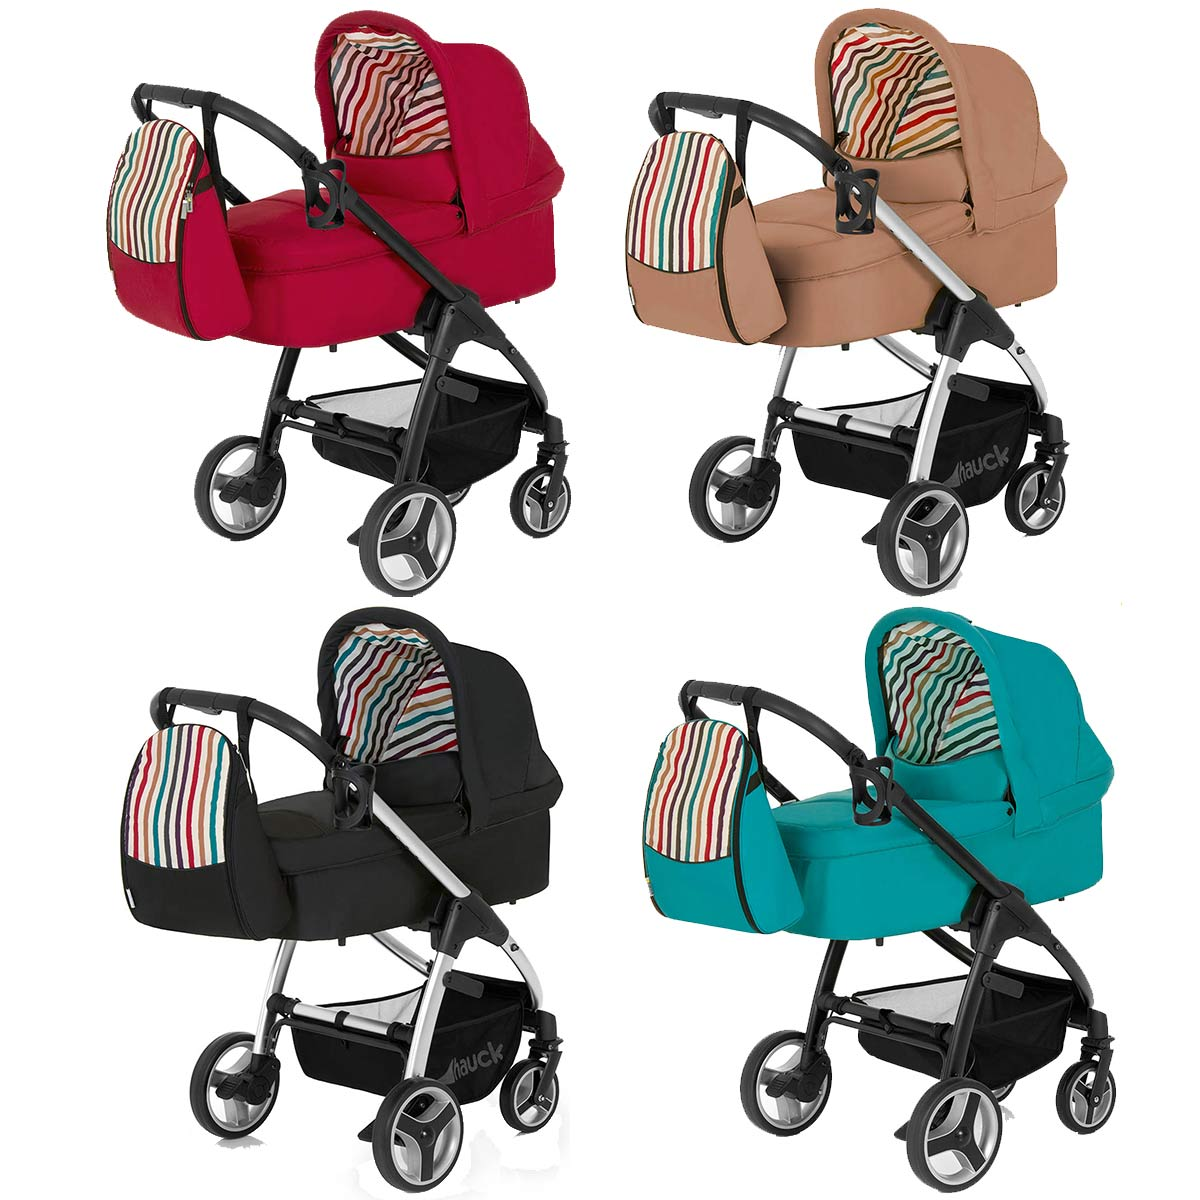 hauck lacrosse all in one travel system pushchair buggy. Black Bedroom Furniture Sets. Home Design Ideas